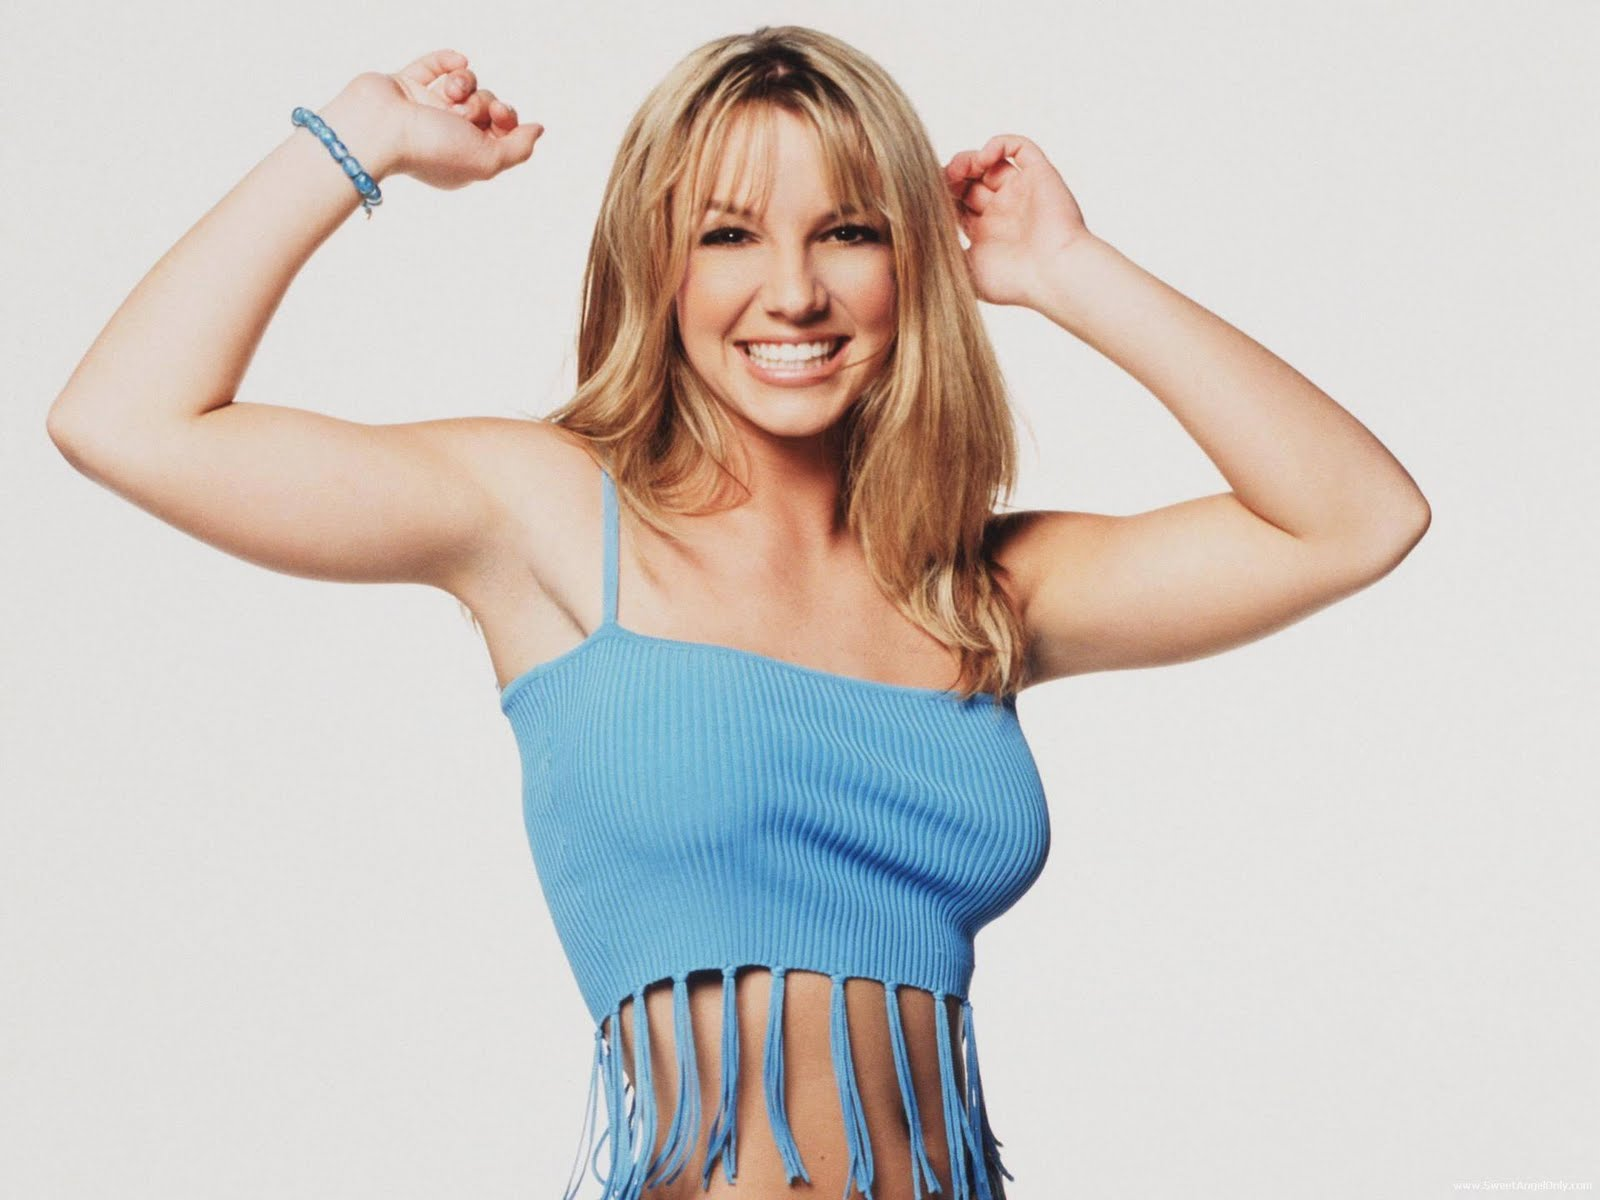 http://1.bp.blogspot.com/-QLj7x7ZzBMA/TtjN0Q7hm_I/AAAAAAAABgc/T4h3vQTT24o/s1600/britney_spears_hollywood_model_wallpaper-1600x1200-02.jpg